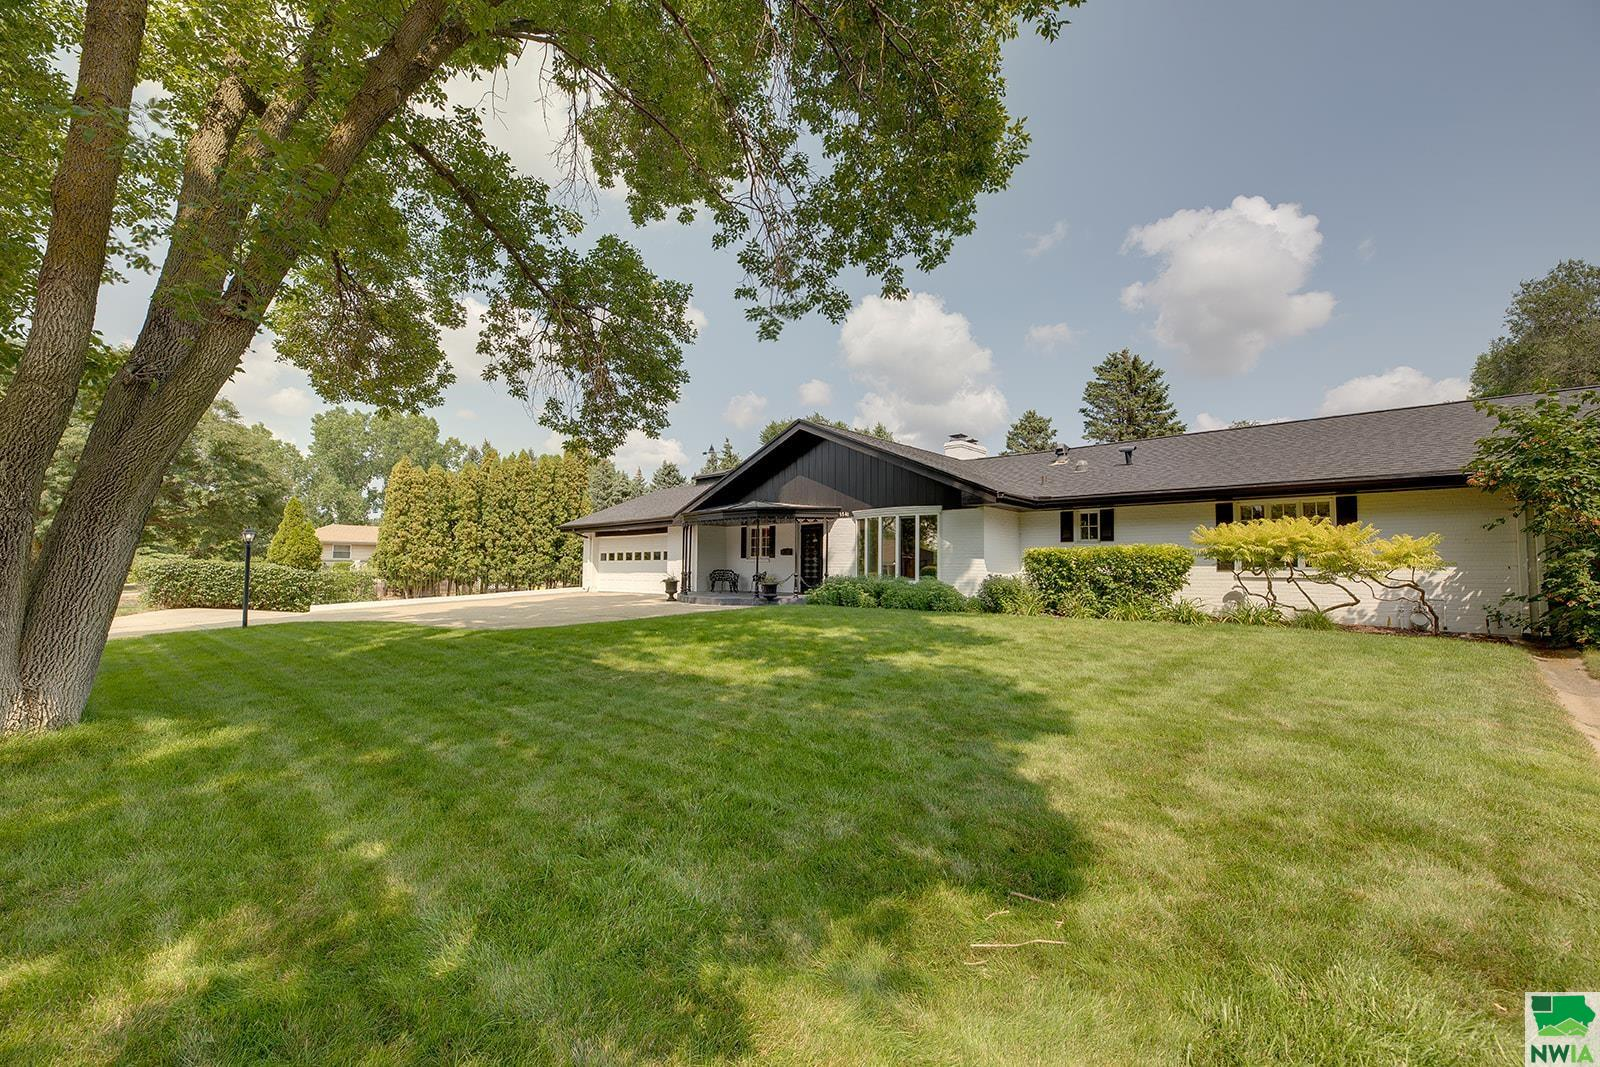 MLS# 814474 for Sale